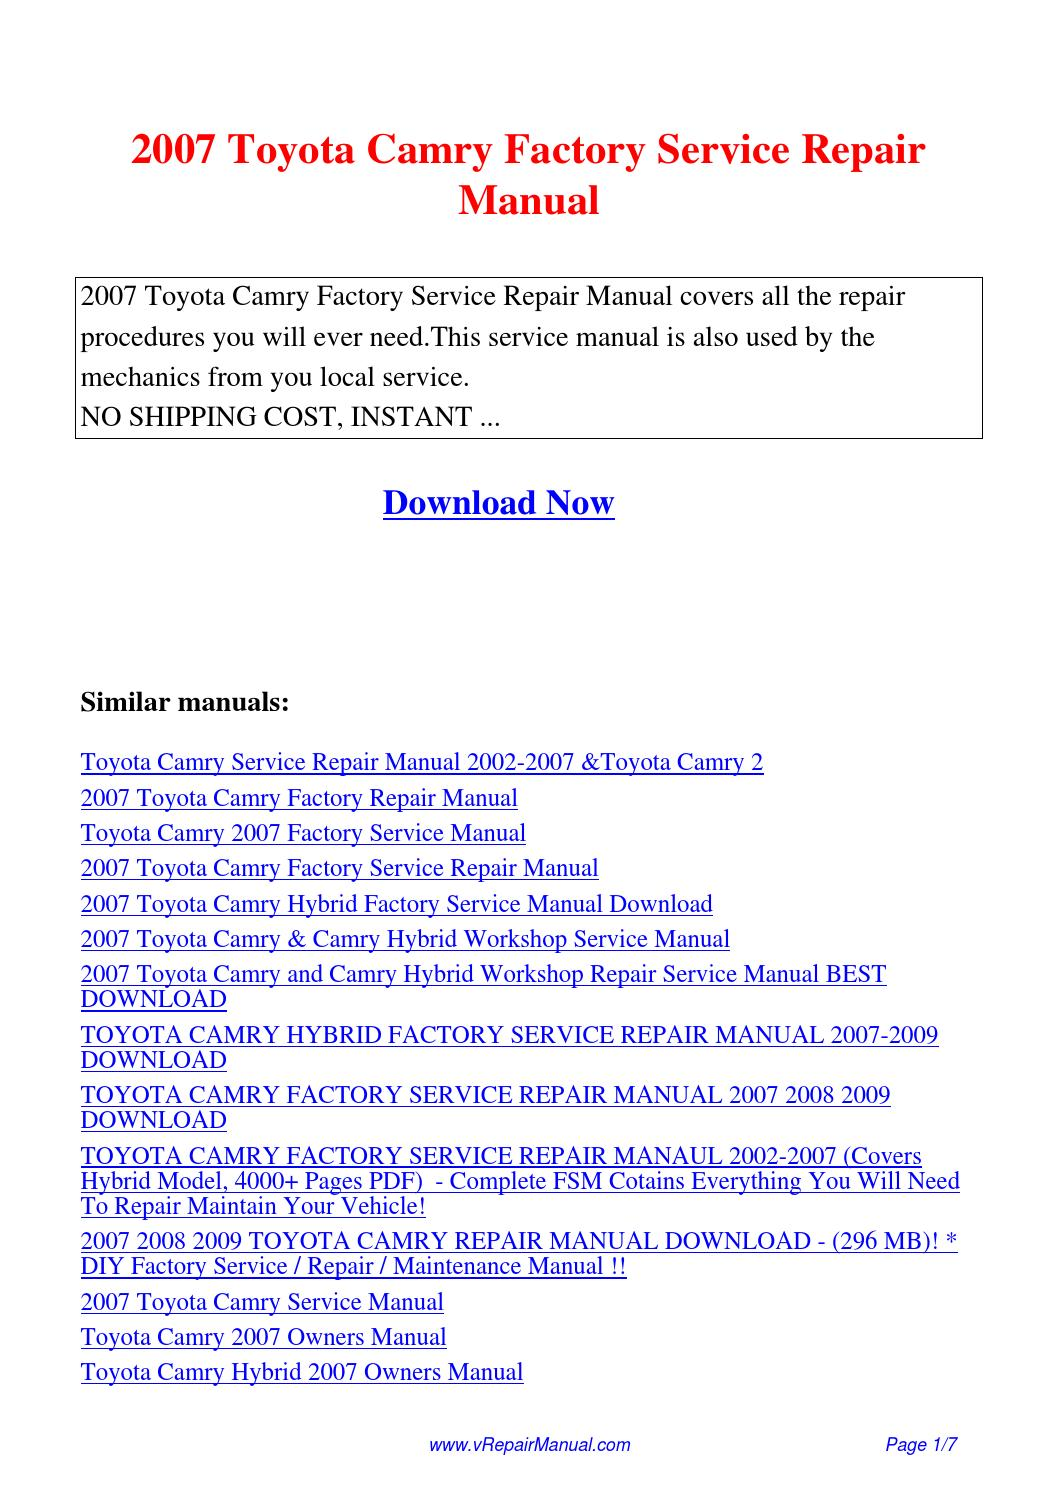 2007 toyota camry factory service repair manual pdf by ting wang issuu rh issuu com Service Repair Manuals Online Manufacturers Auto Repair Service Manuals